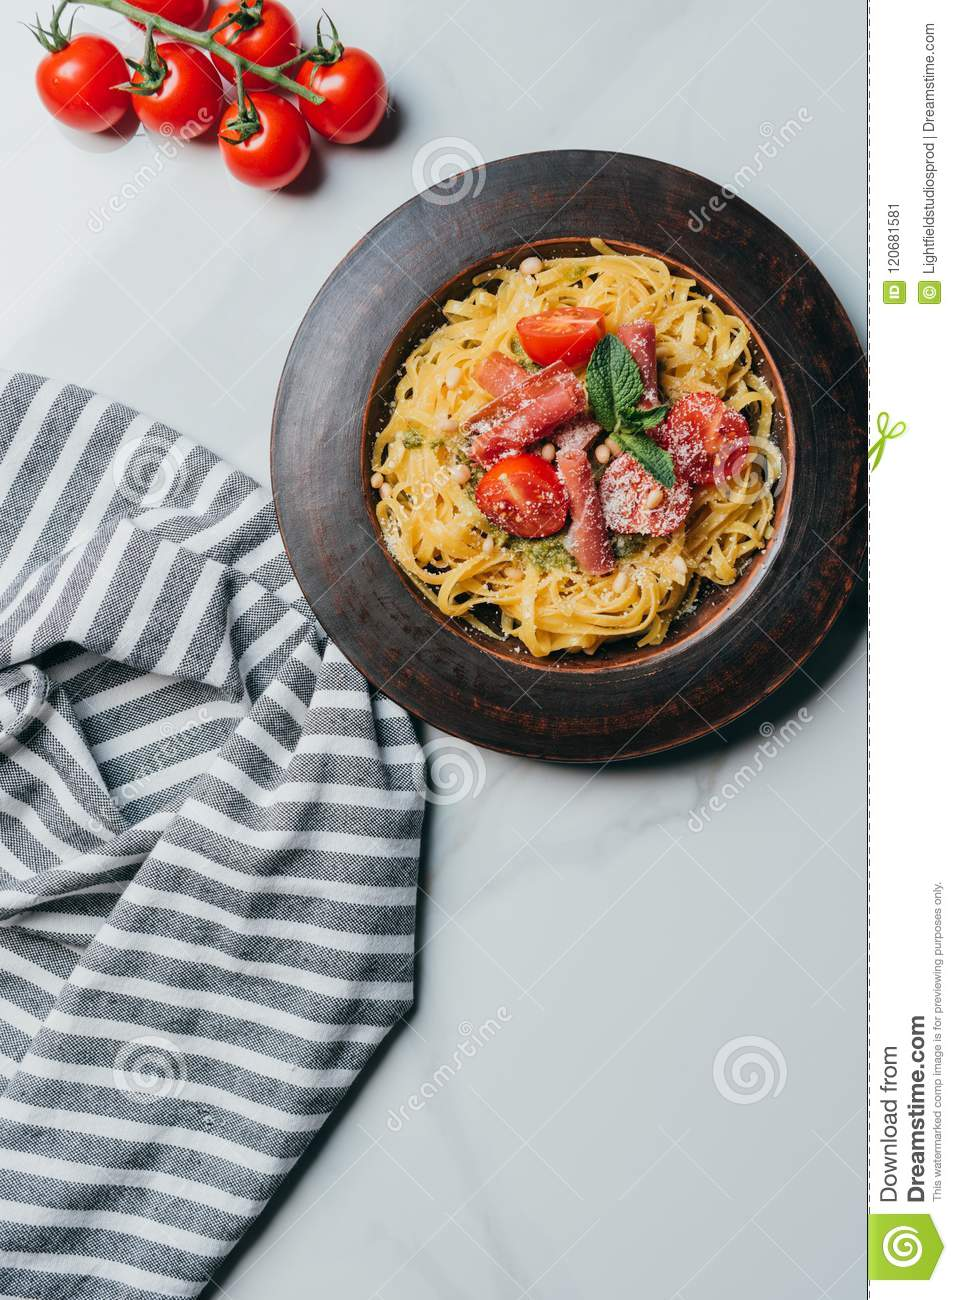 elevated view of pasta with mint leaves, jamon and cherry tomatoes covered by parmesan on plate at marble table